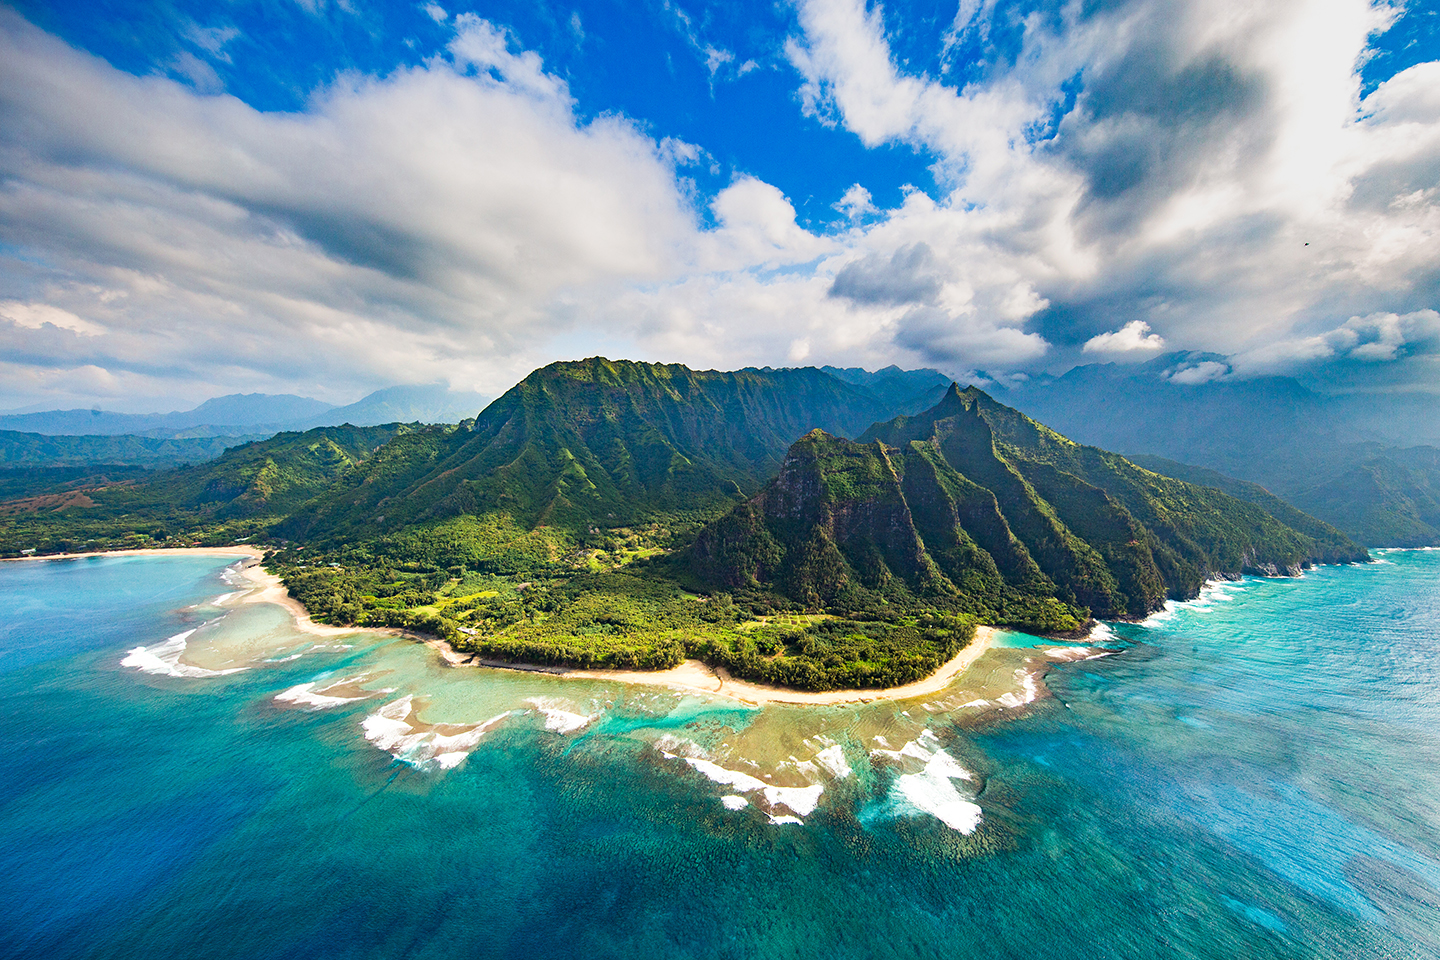 An aerial view of the Hawaiian island of Kauai, known as the Garden Isle.